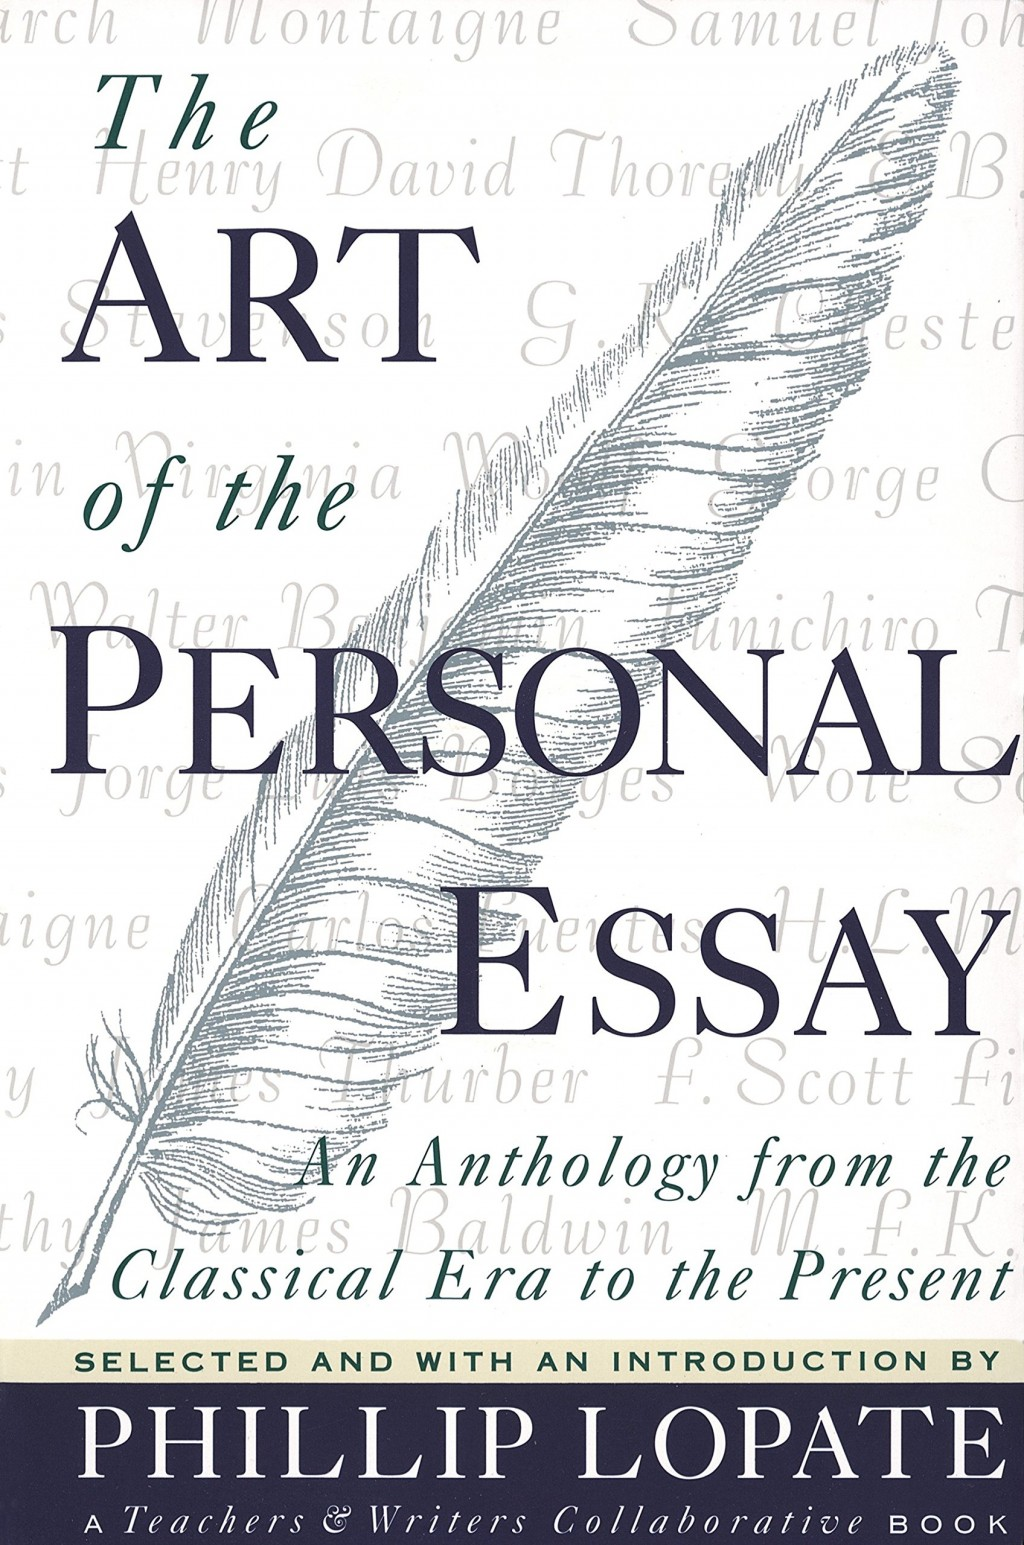 001 91bxbkzxmml The Art Of Personal Essay Beautiful Pdf Download Table Contents Large